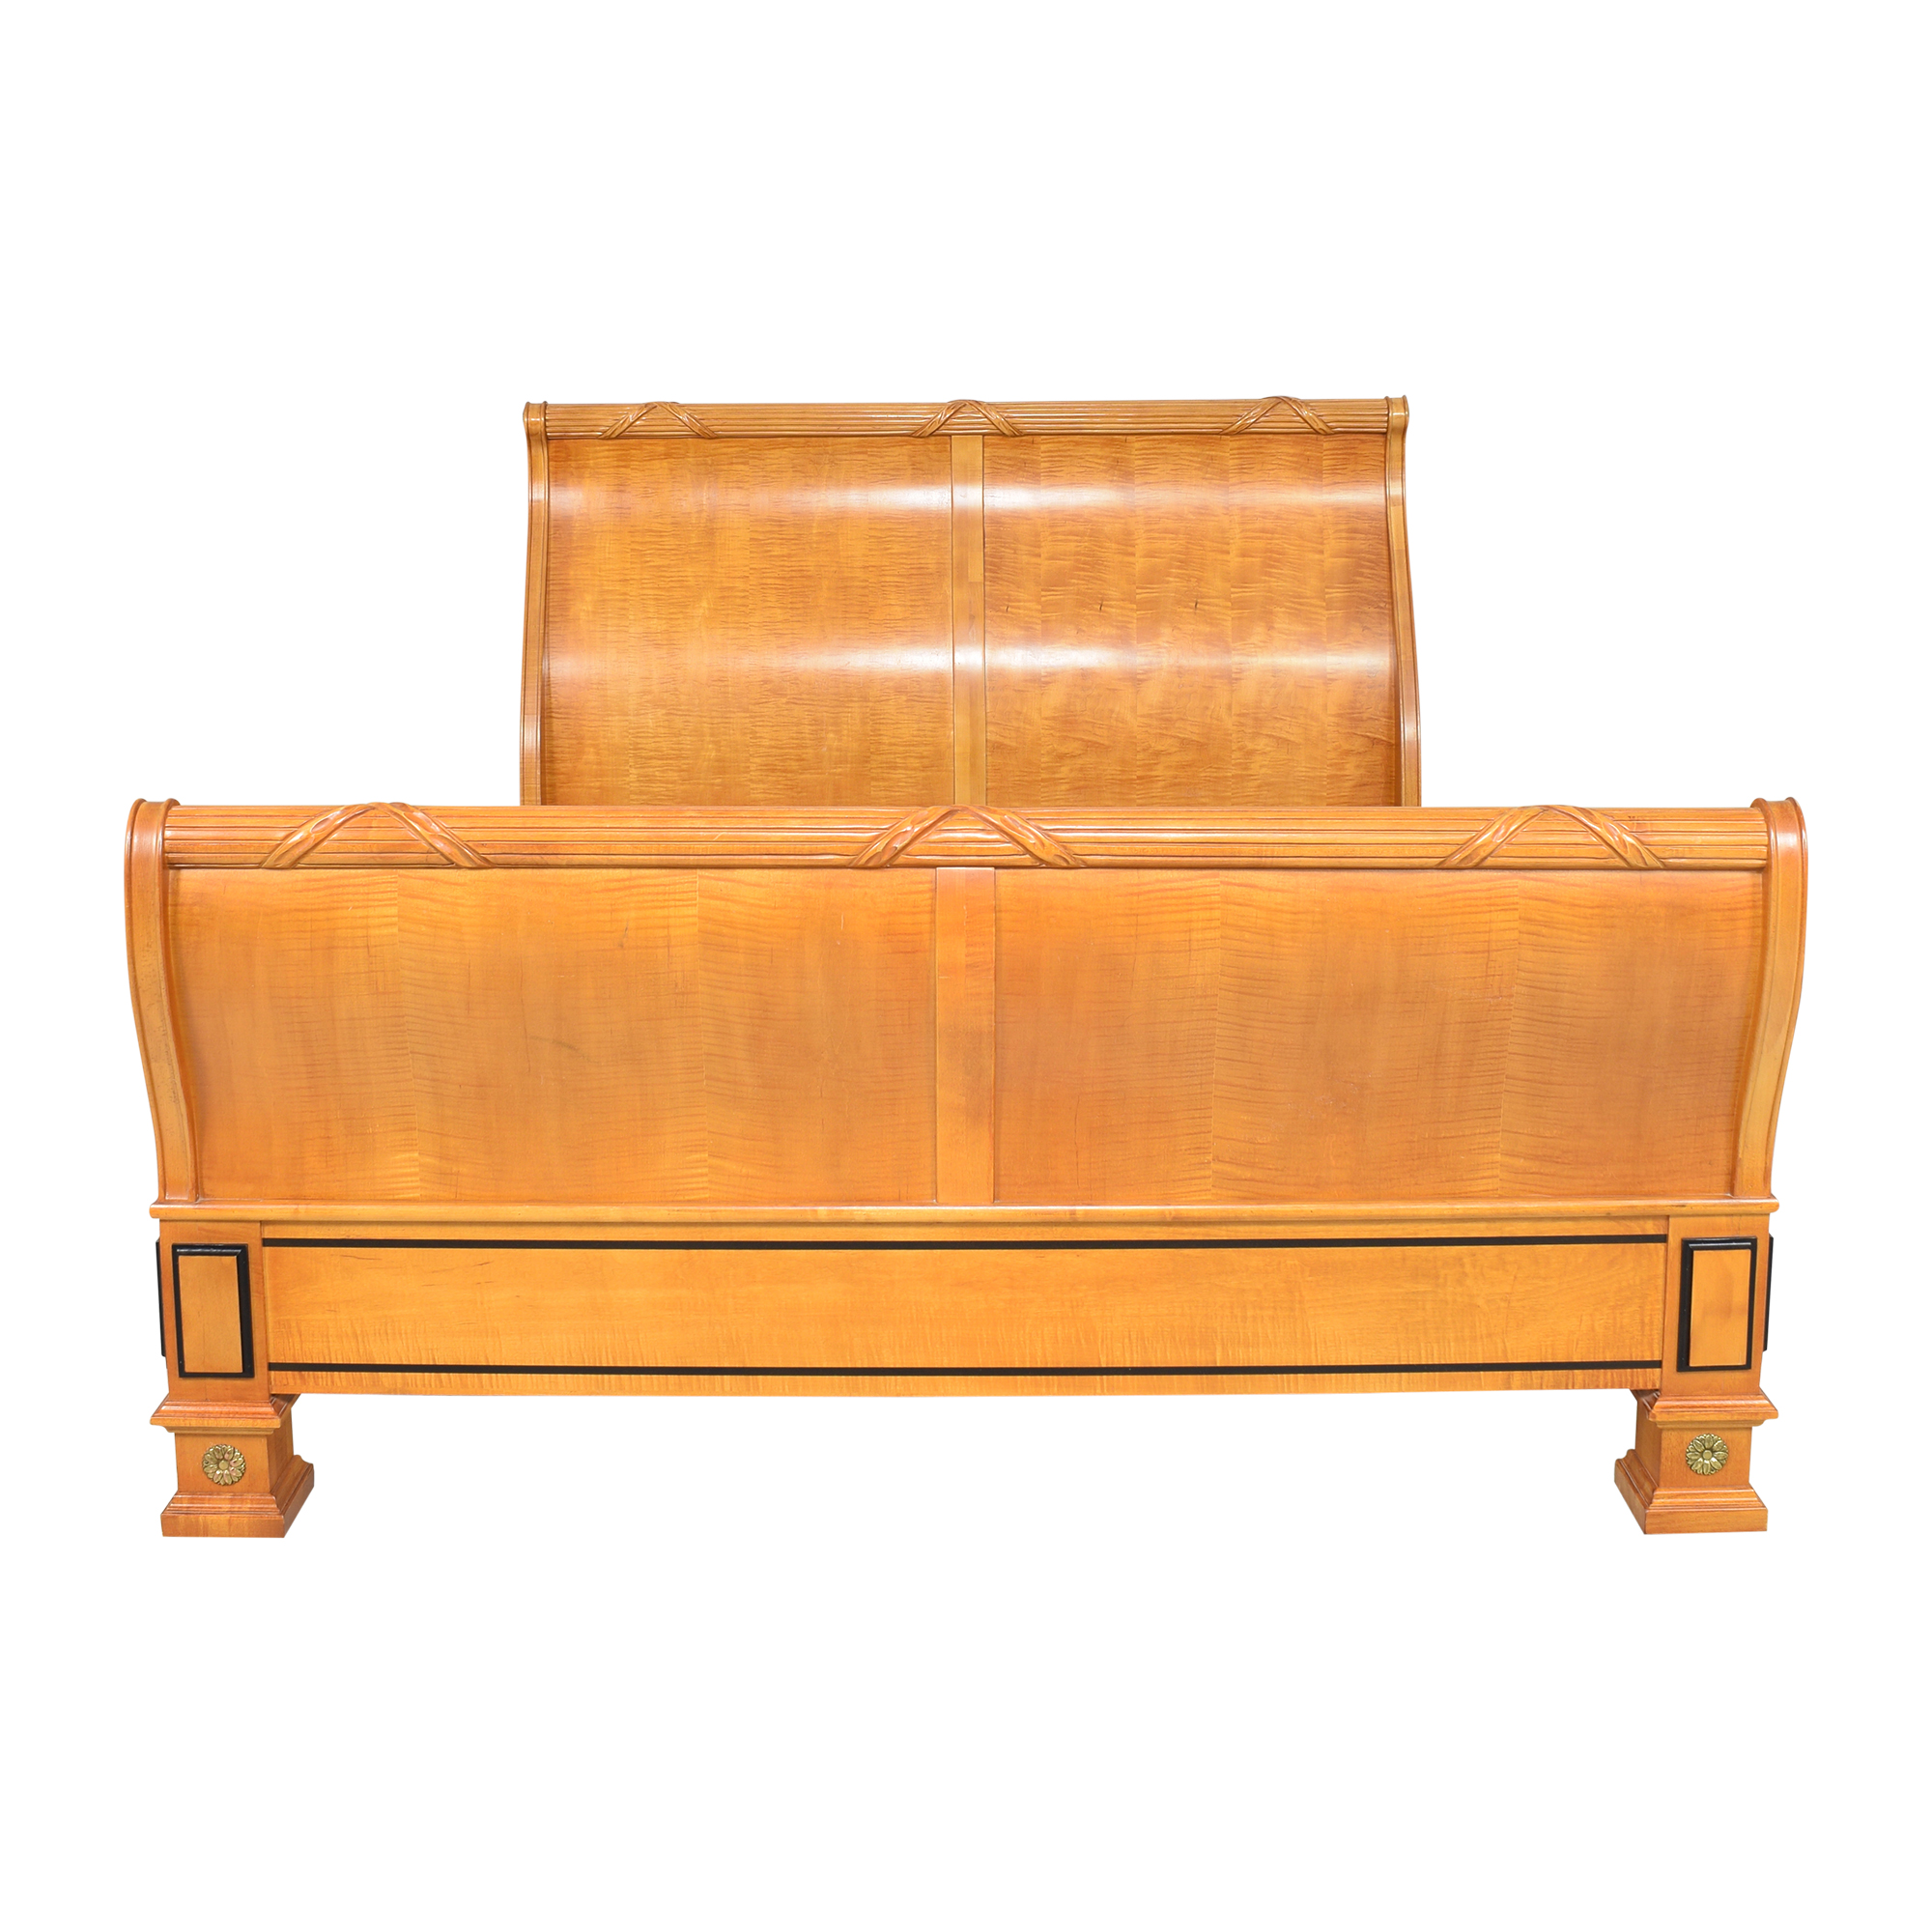 Thomasville Thomasville Grand Classics Biedermeier-Style Queen Sleigh Bed used